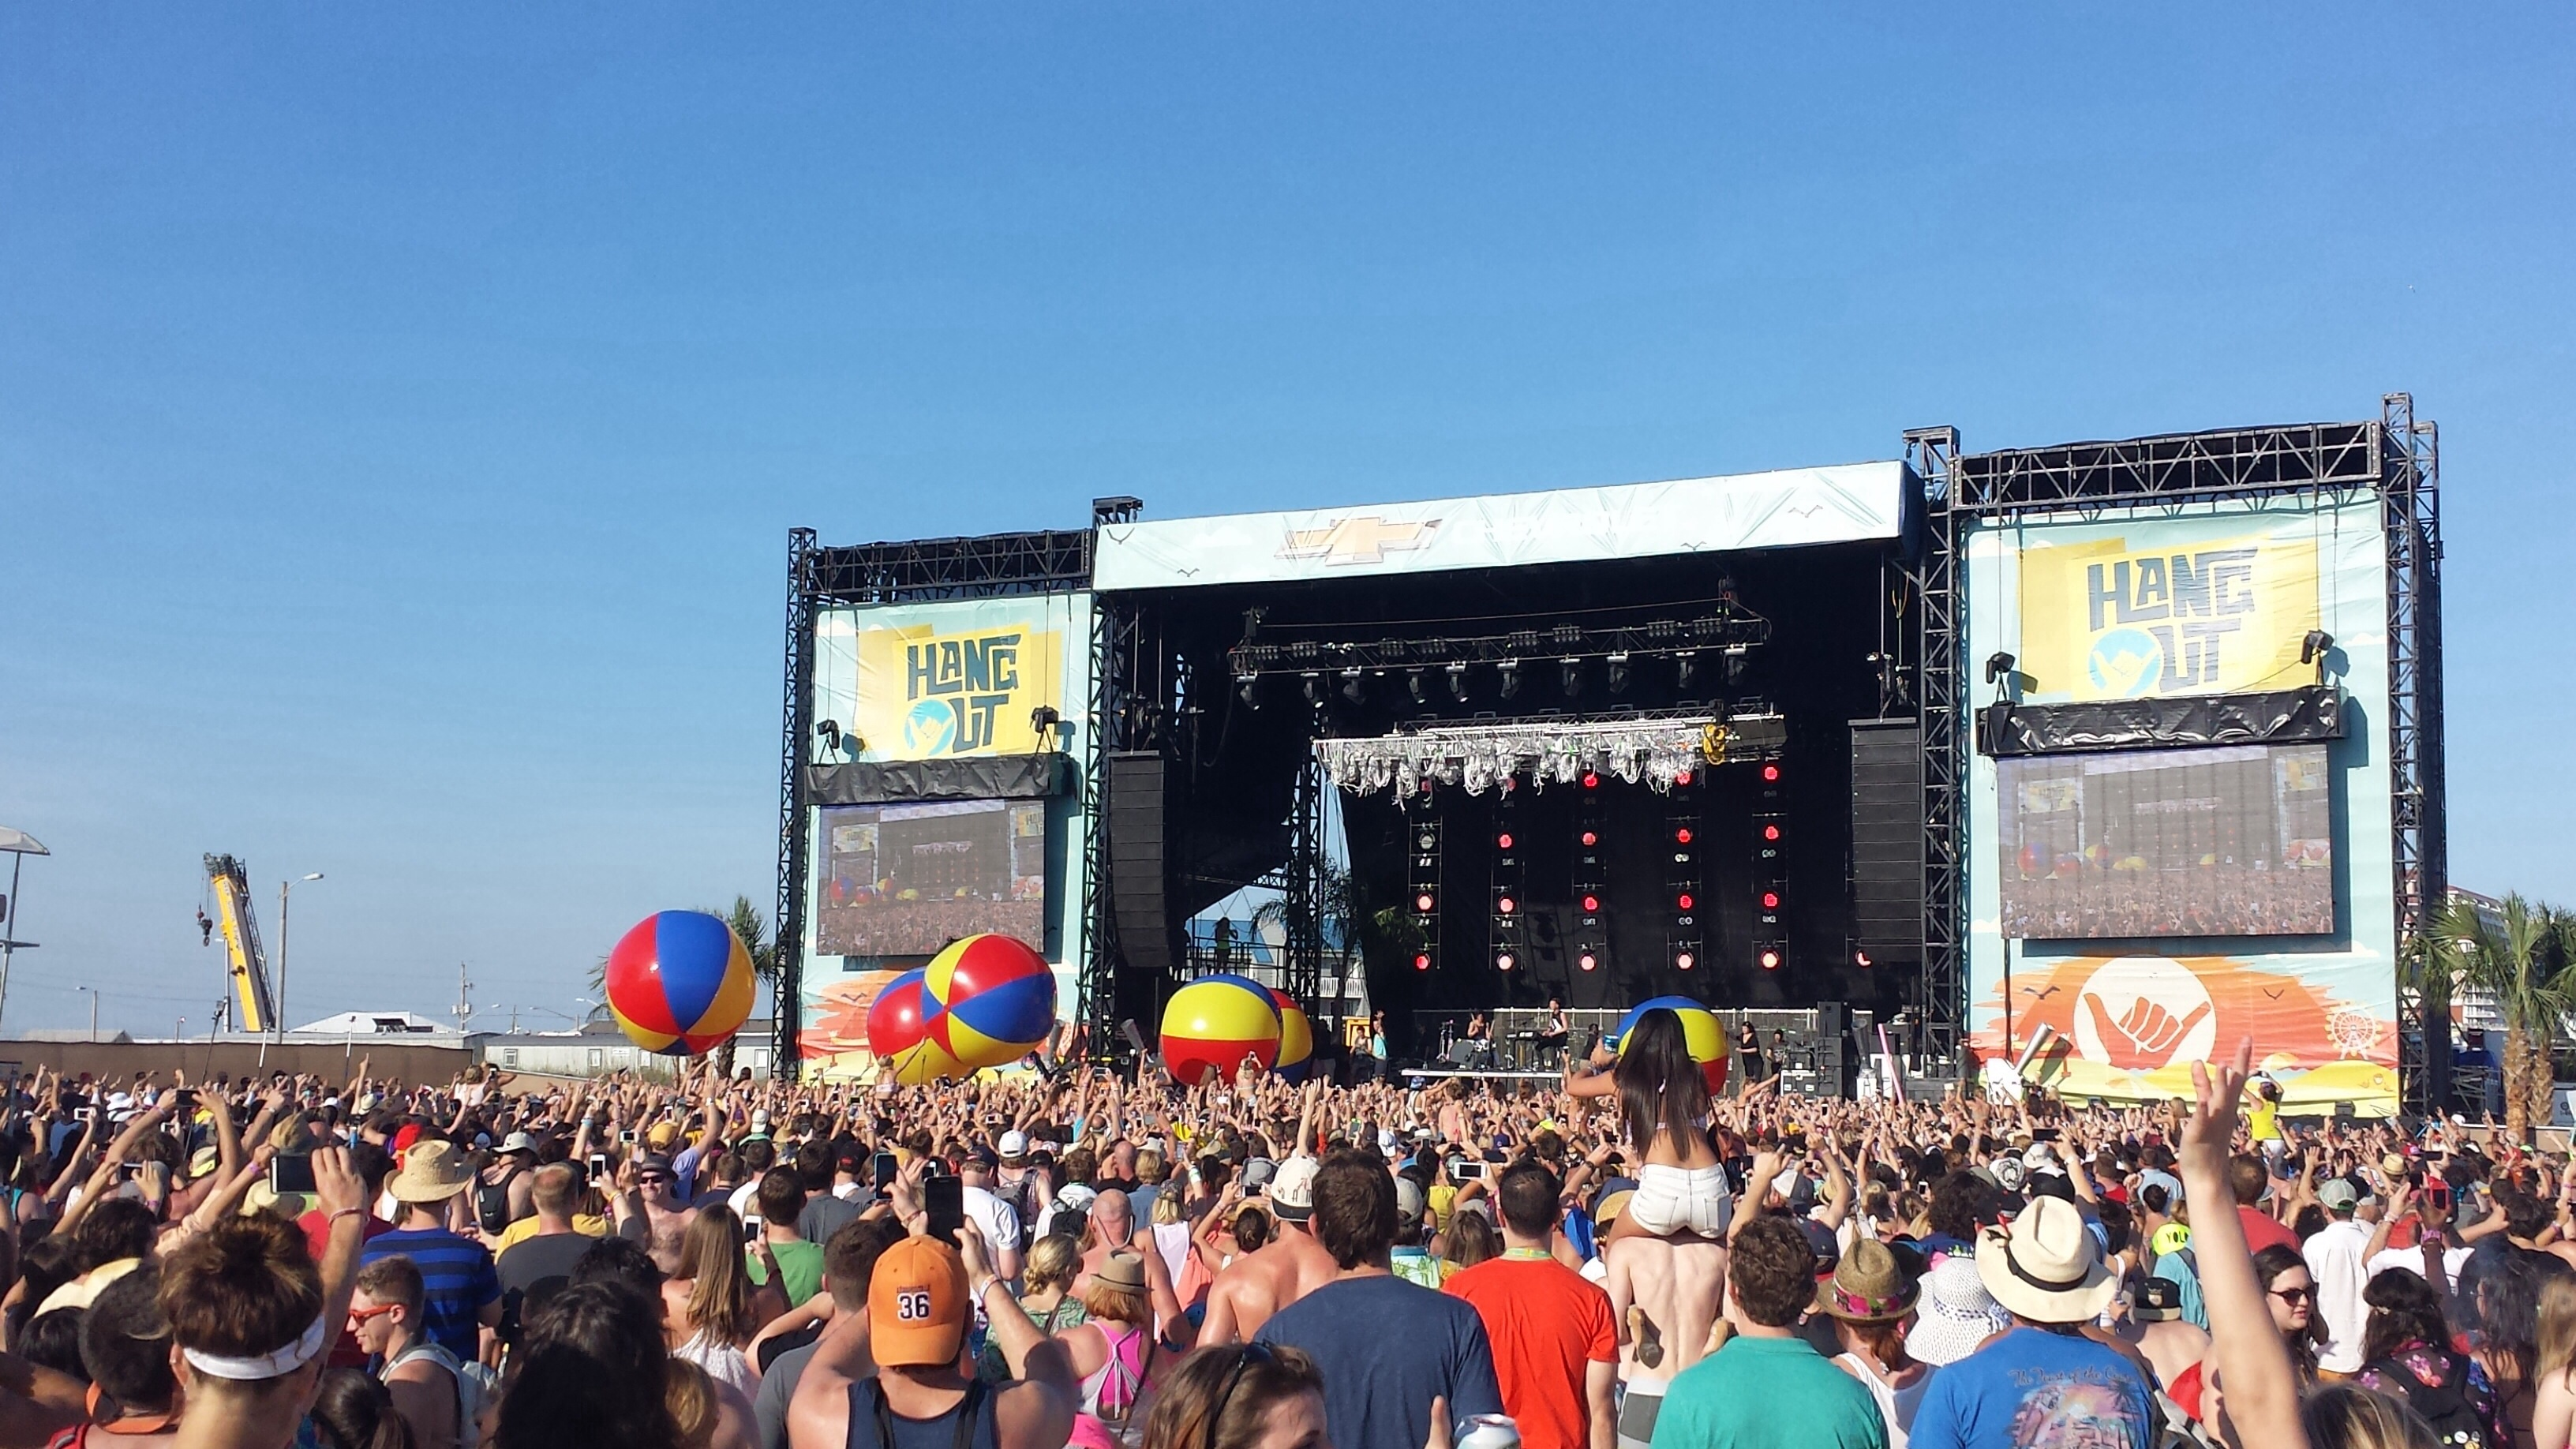 Matt and Kim at Hangout Fest 2014. Photo by: Matthew McGuire